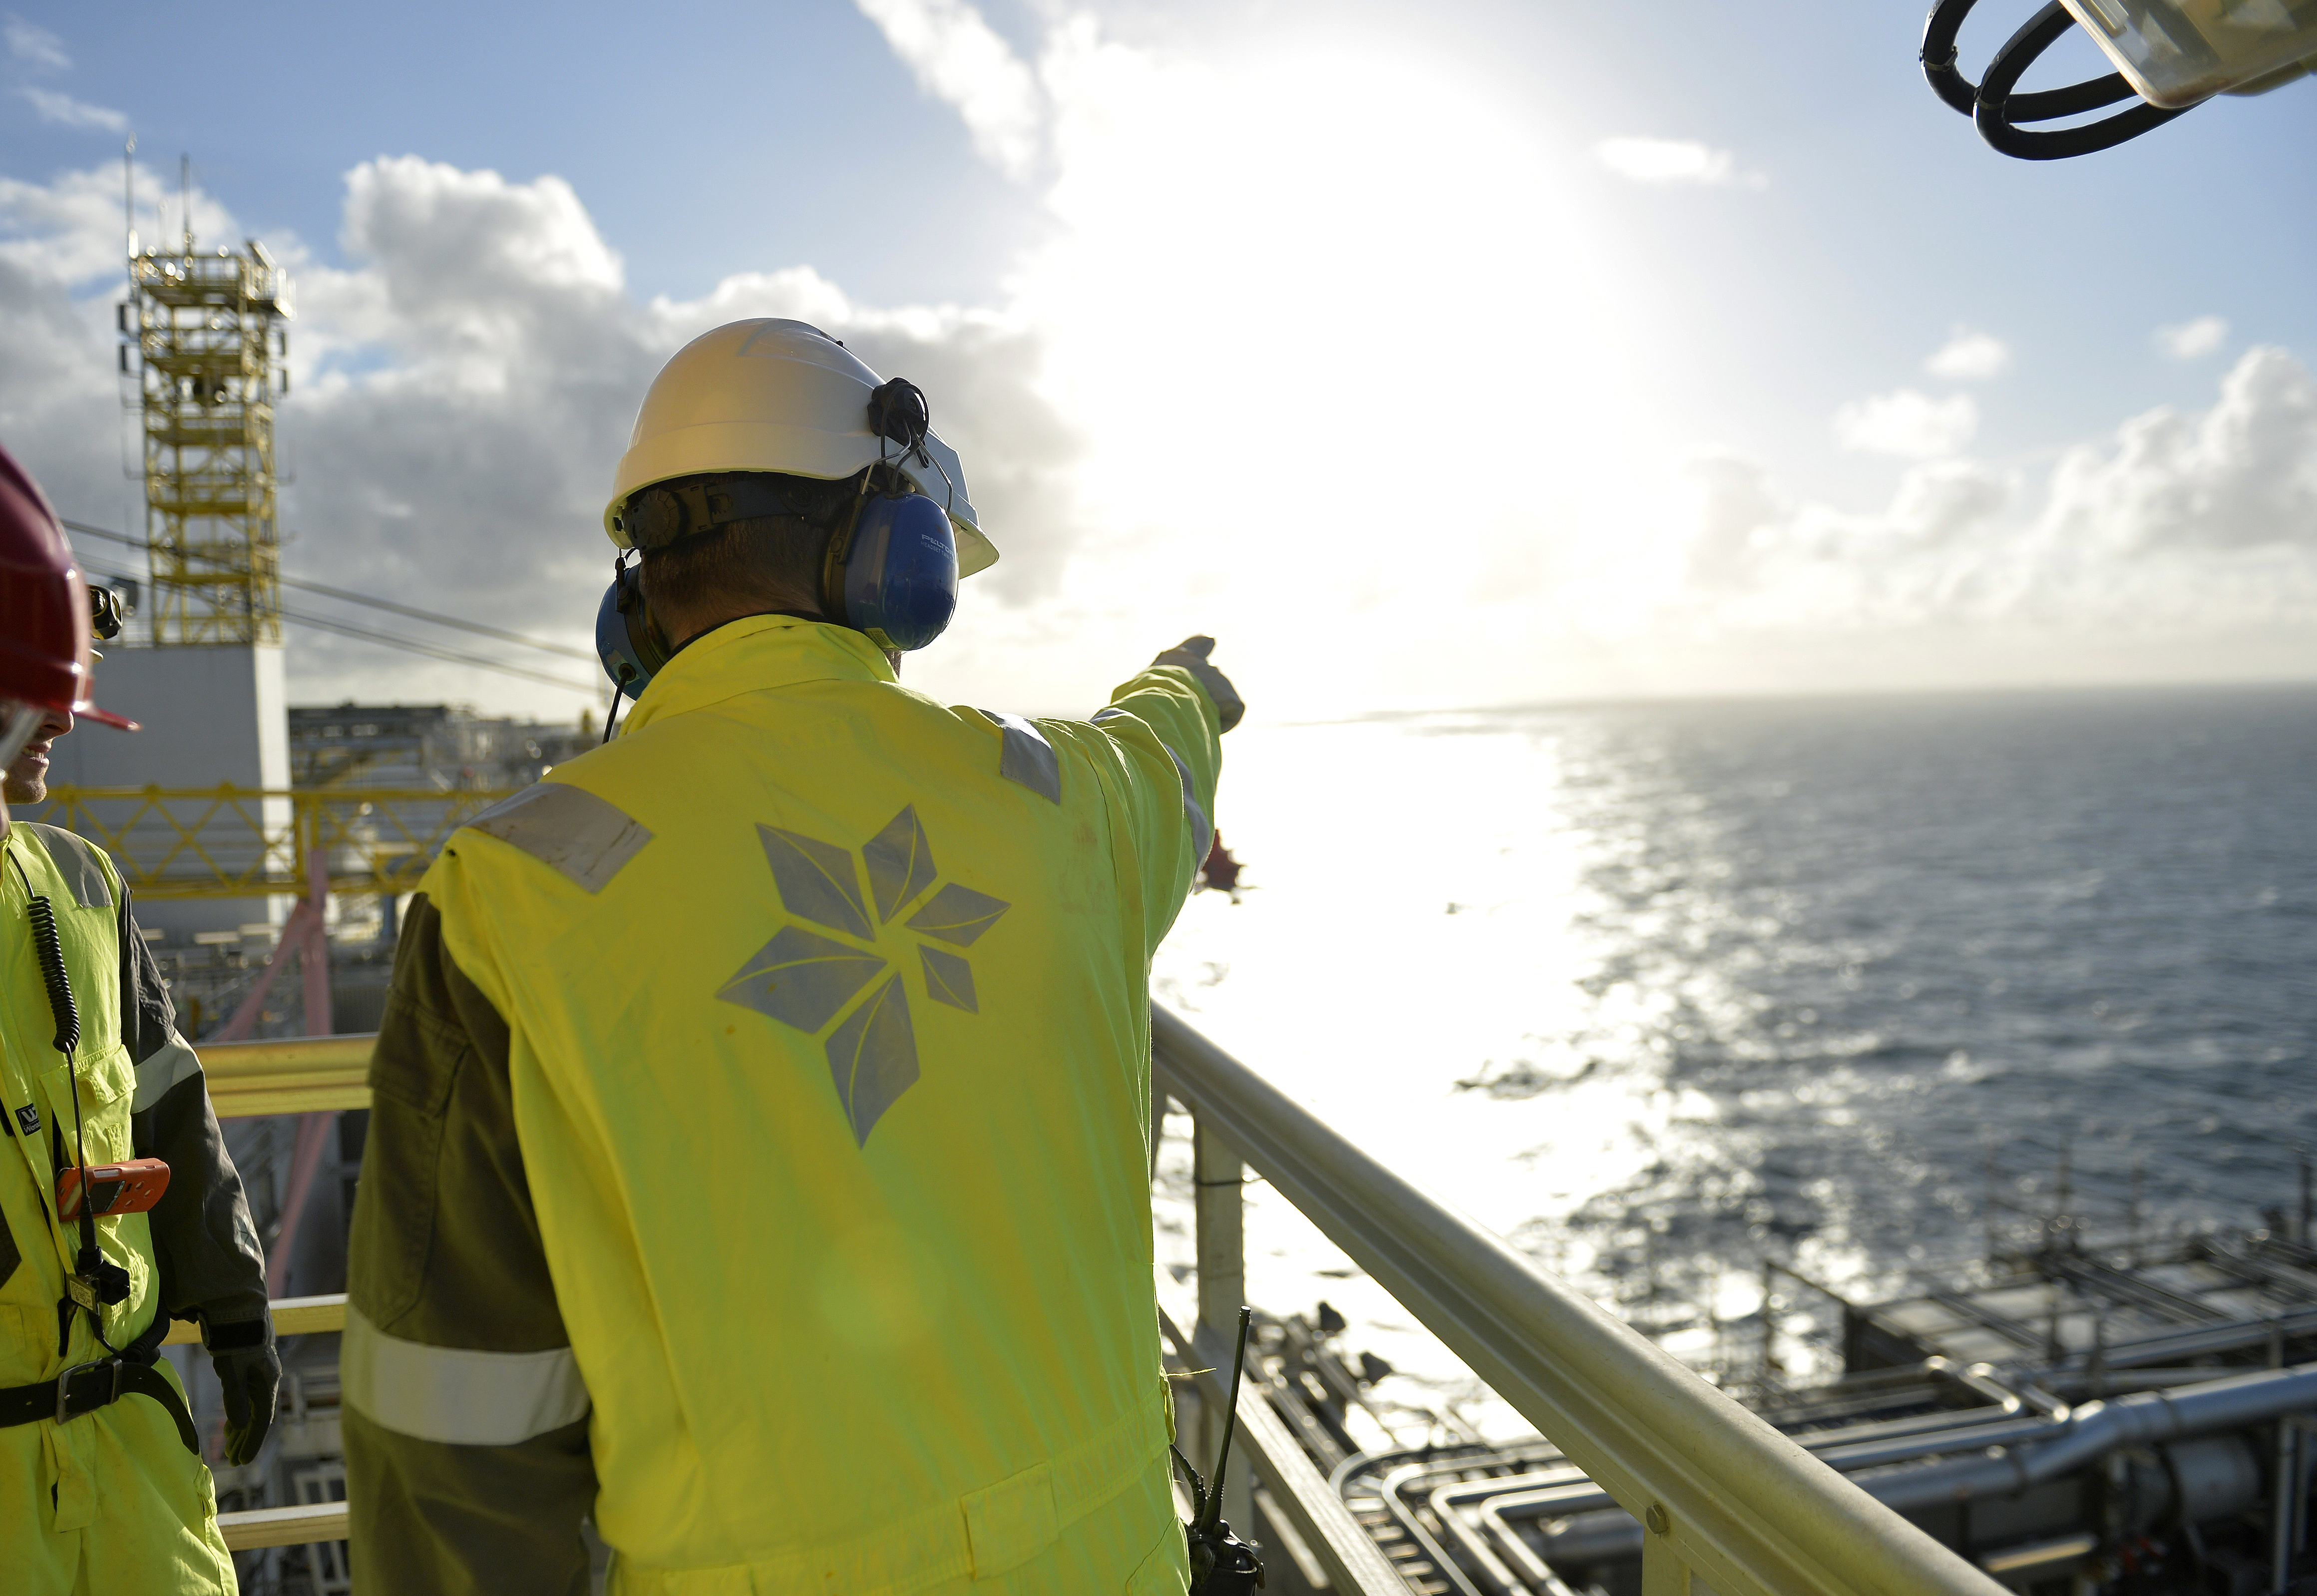 statoil company in norway essay The local spoke to broadcaster and journalist clement 61 percent stake in the company smuggling after he assisted refugees with identity papers.